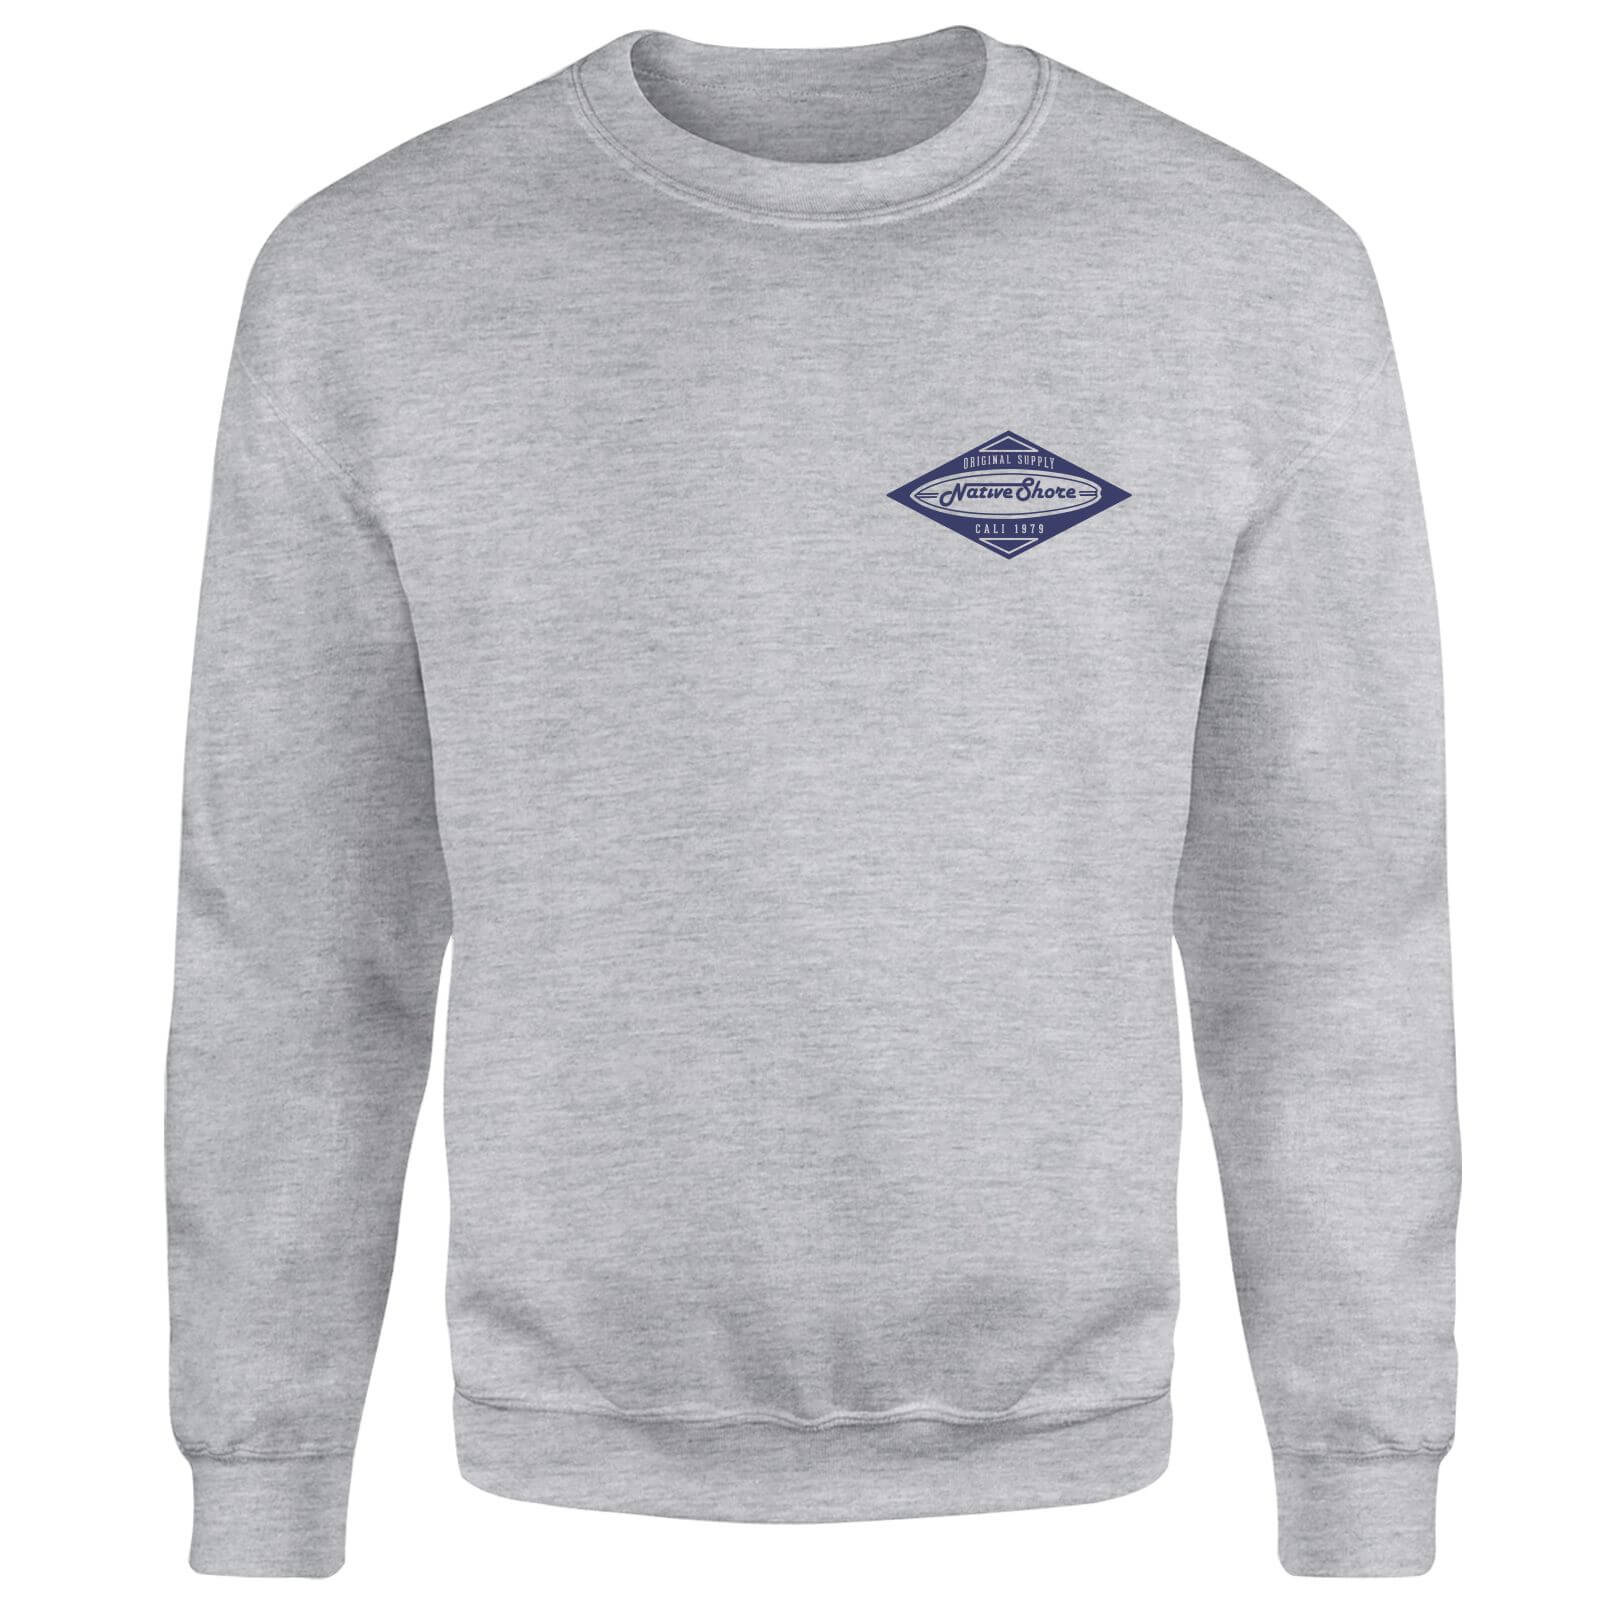 Native Shore Logo Sweatshirt - Grey